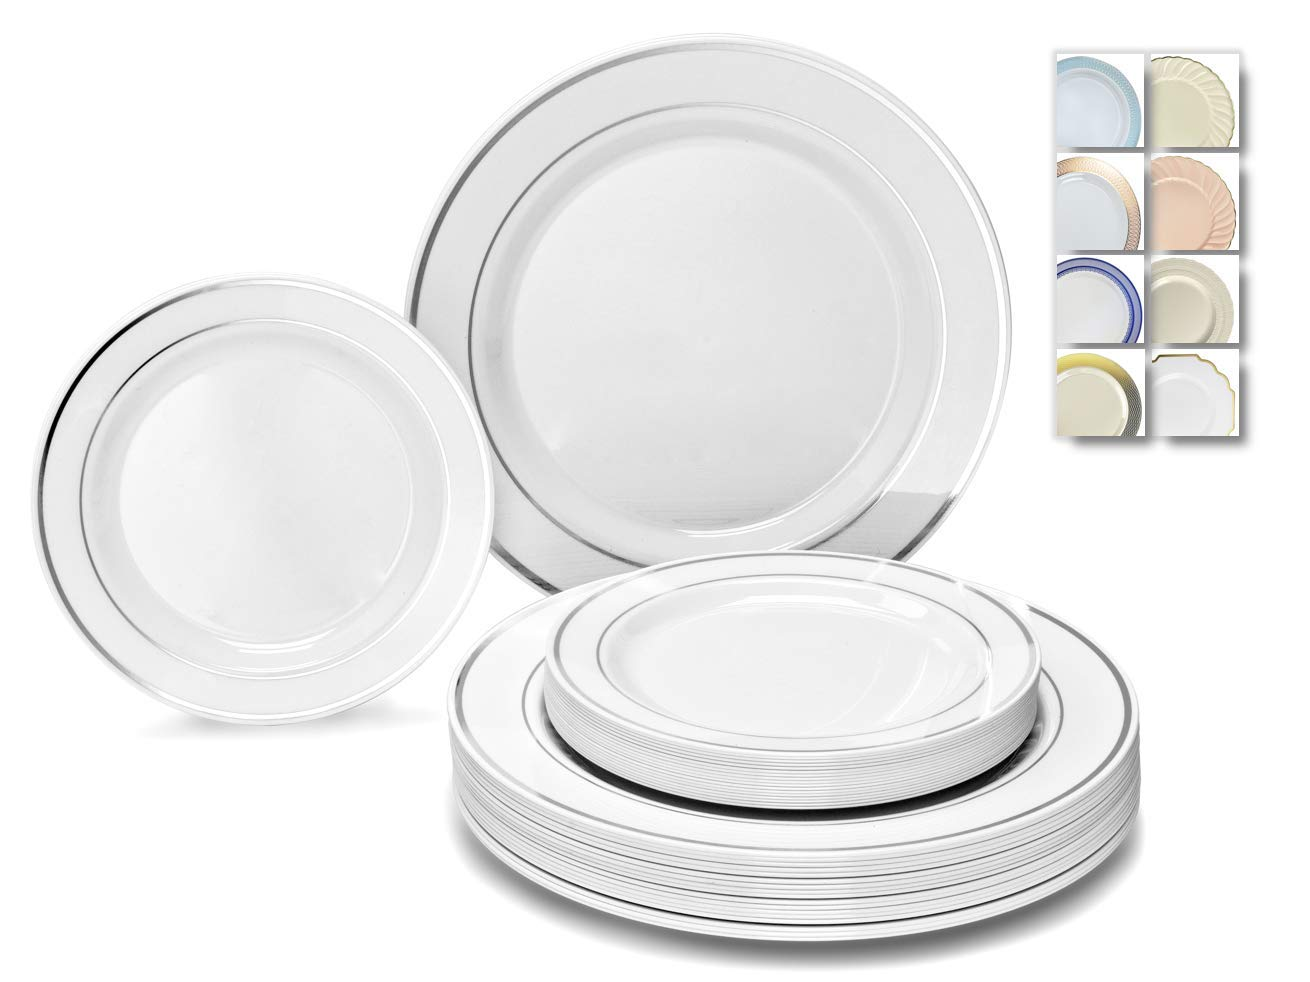 '' OCCASIONS'' 50 Plates Pack (25 Guests) - Heavyweight Wedding Party Disposable Plastic Plate Set - 25 x 10.5'' Dinner + 25 x 7.5'' Salad/dessert plates (White & Silver Rim) by OCCASIONS FINEST PLASTIC TABLEWARE